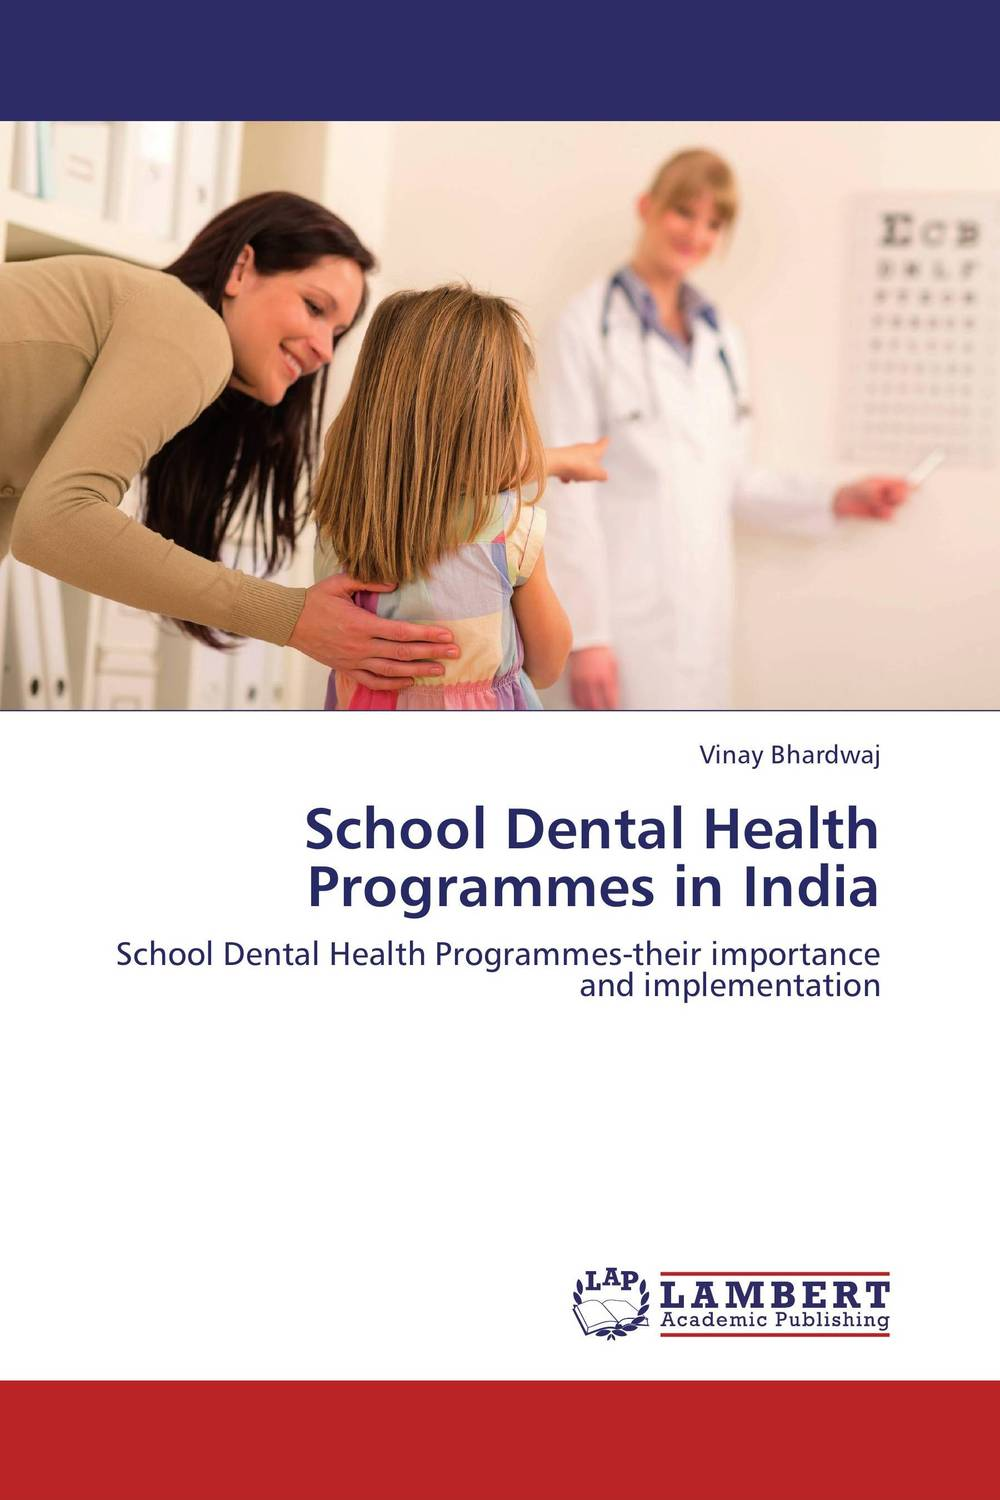 School Dental Health Programmes in India